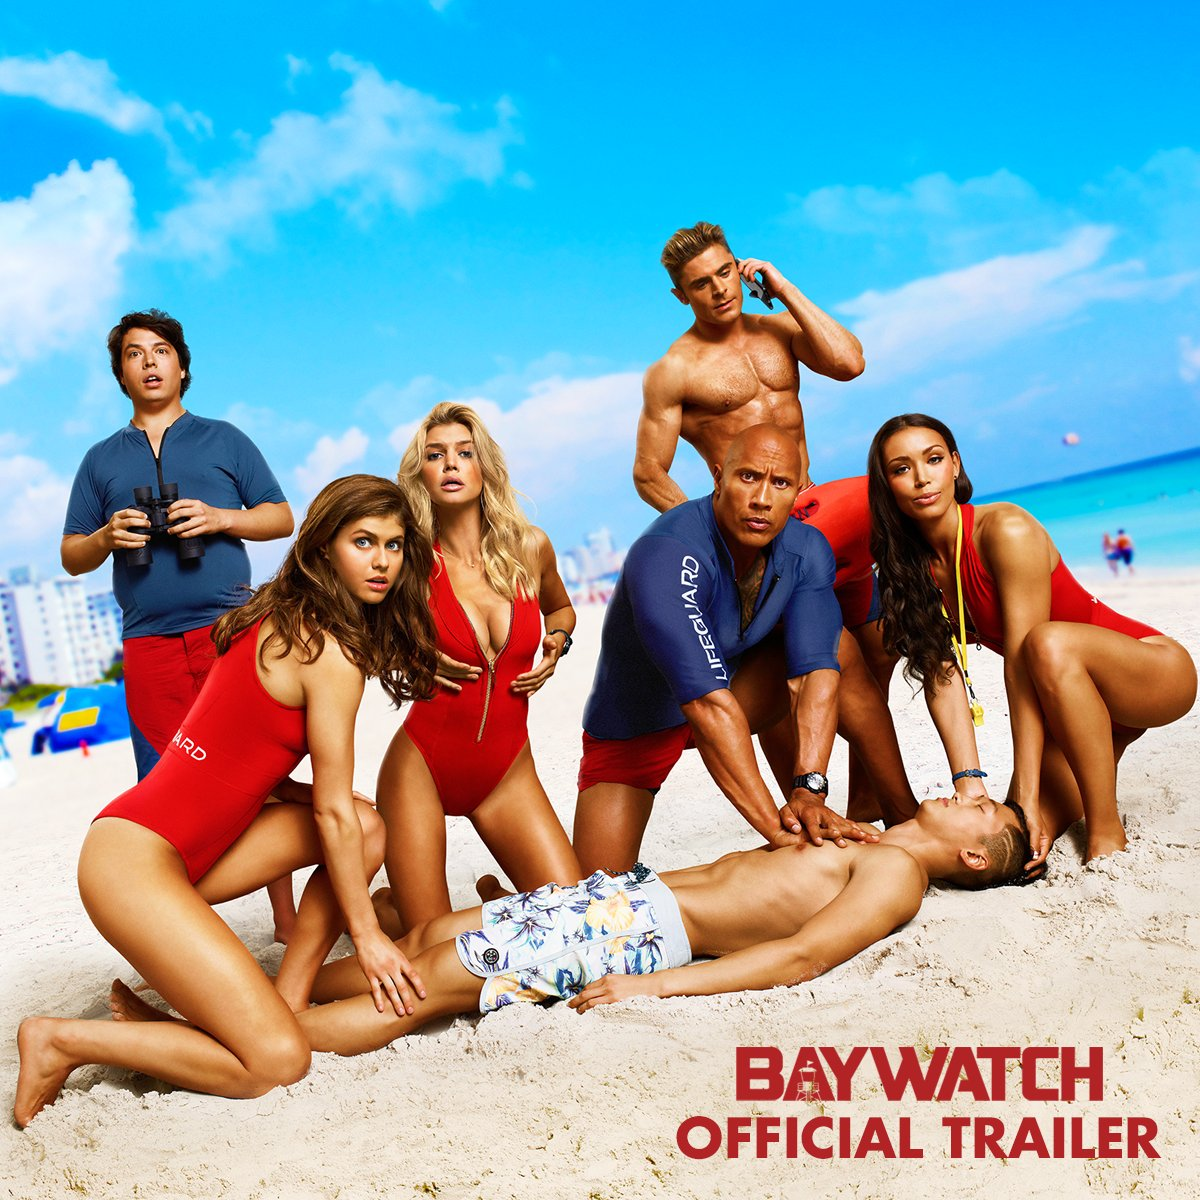 Live fast, run slow. Watch the #Baywatch trailer starring @TheRock and...